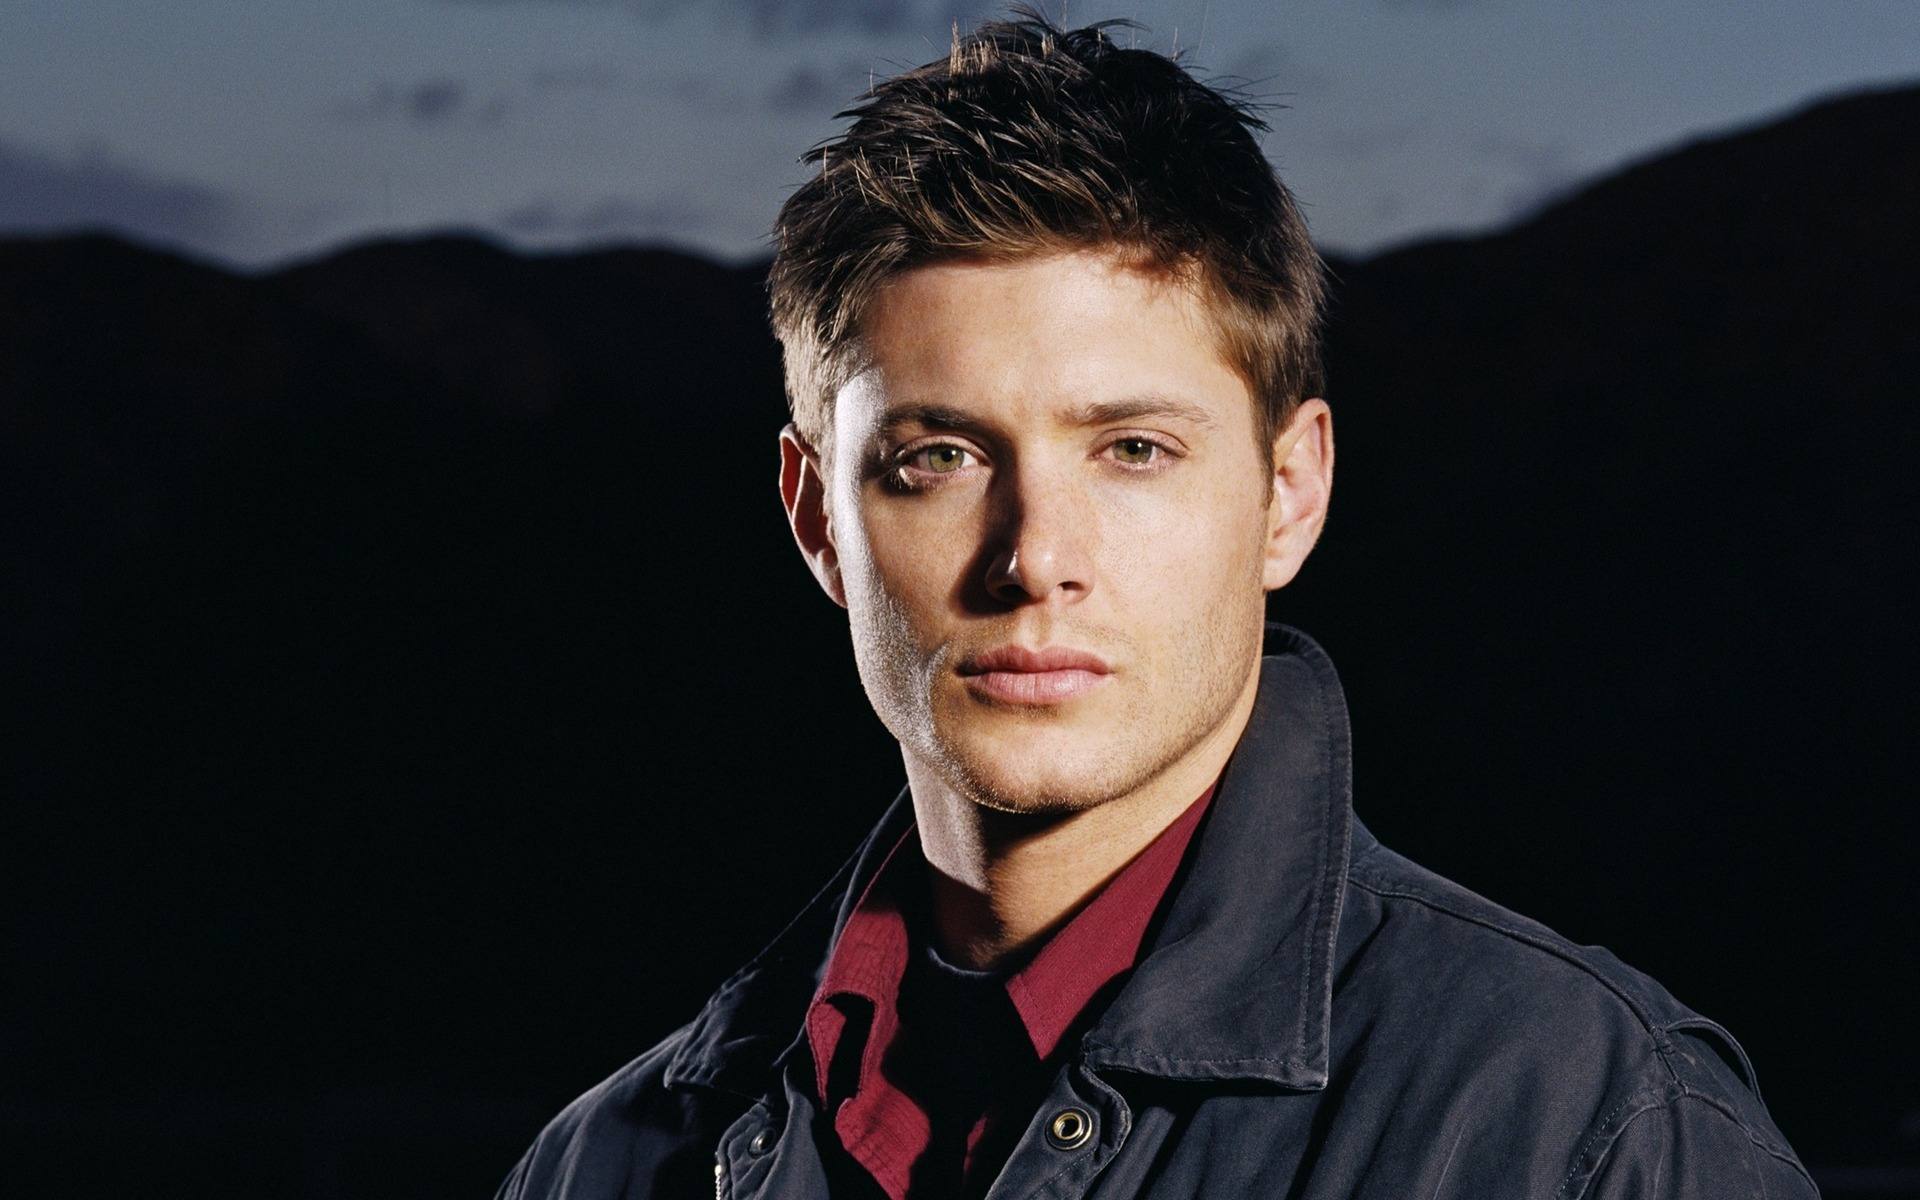 original wallpaper download: Popular Jensen Ackles - 1920x1200